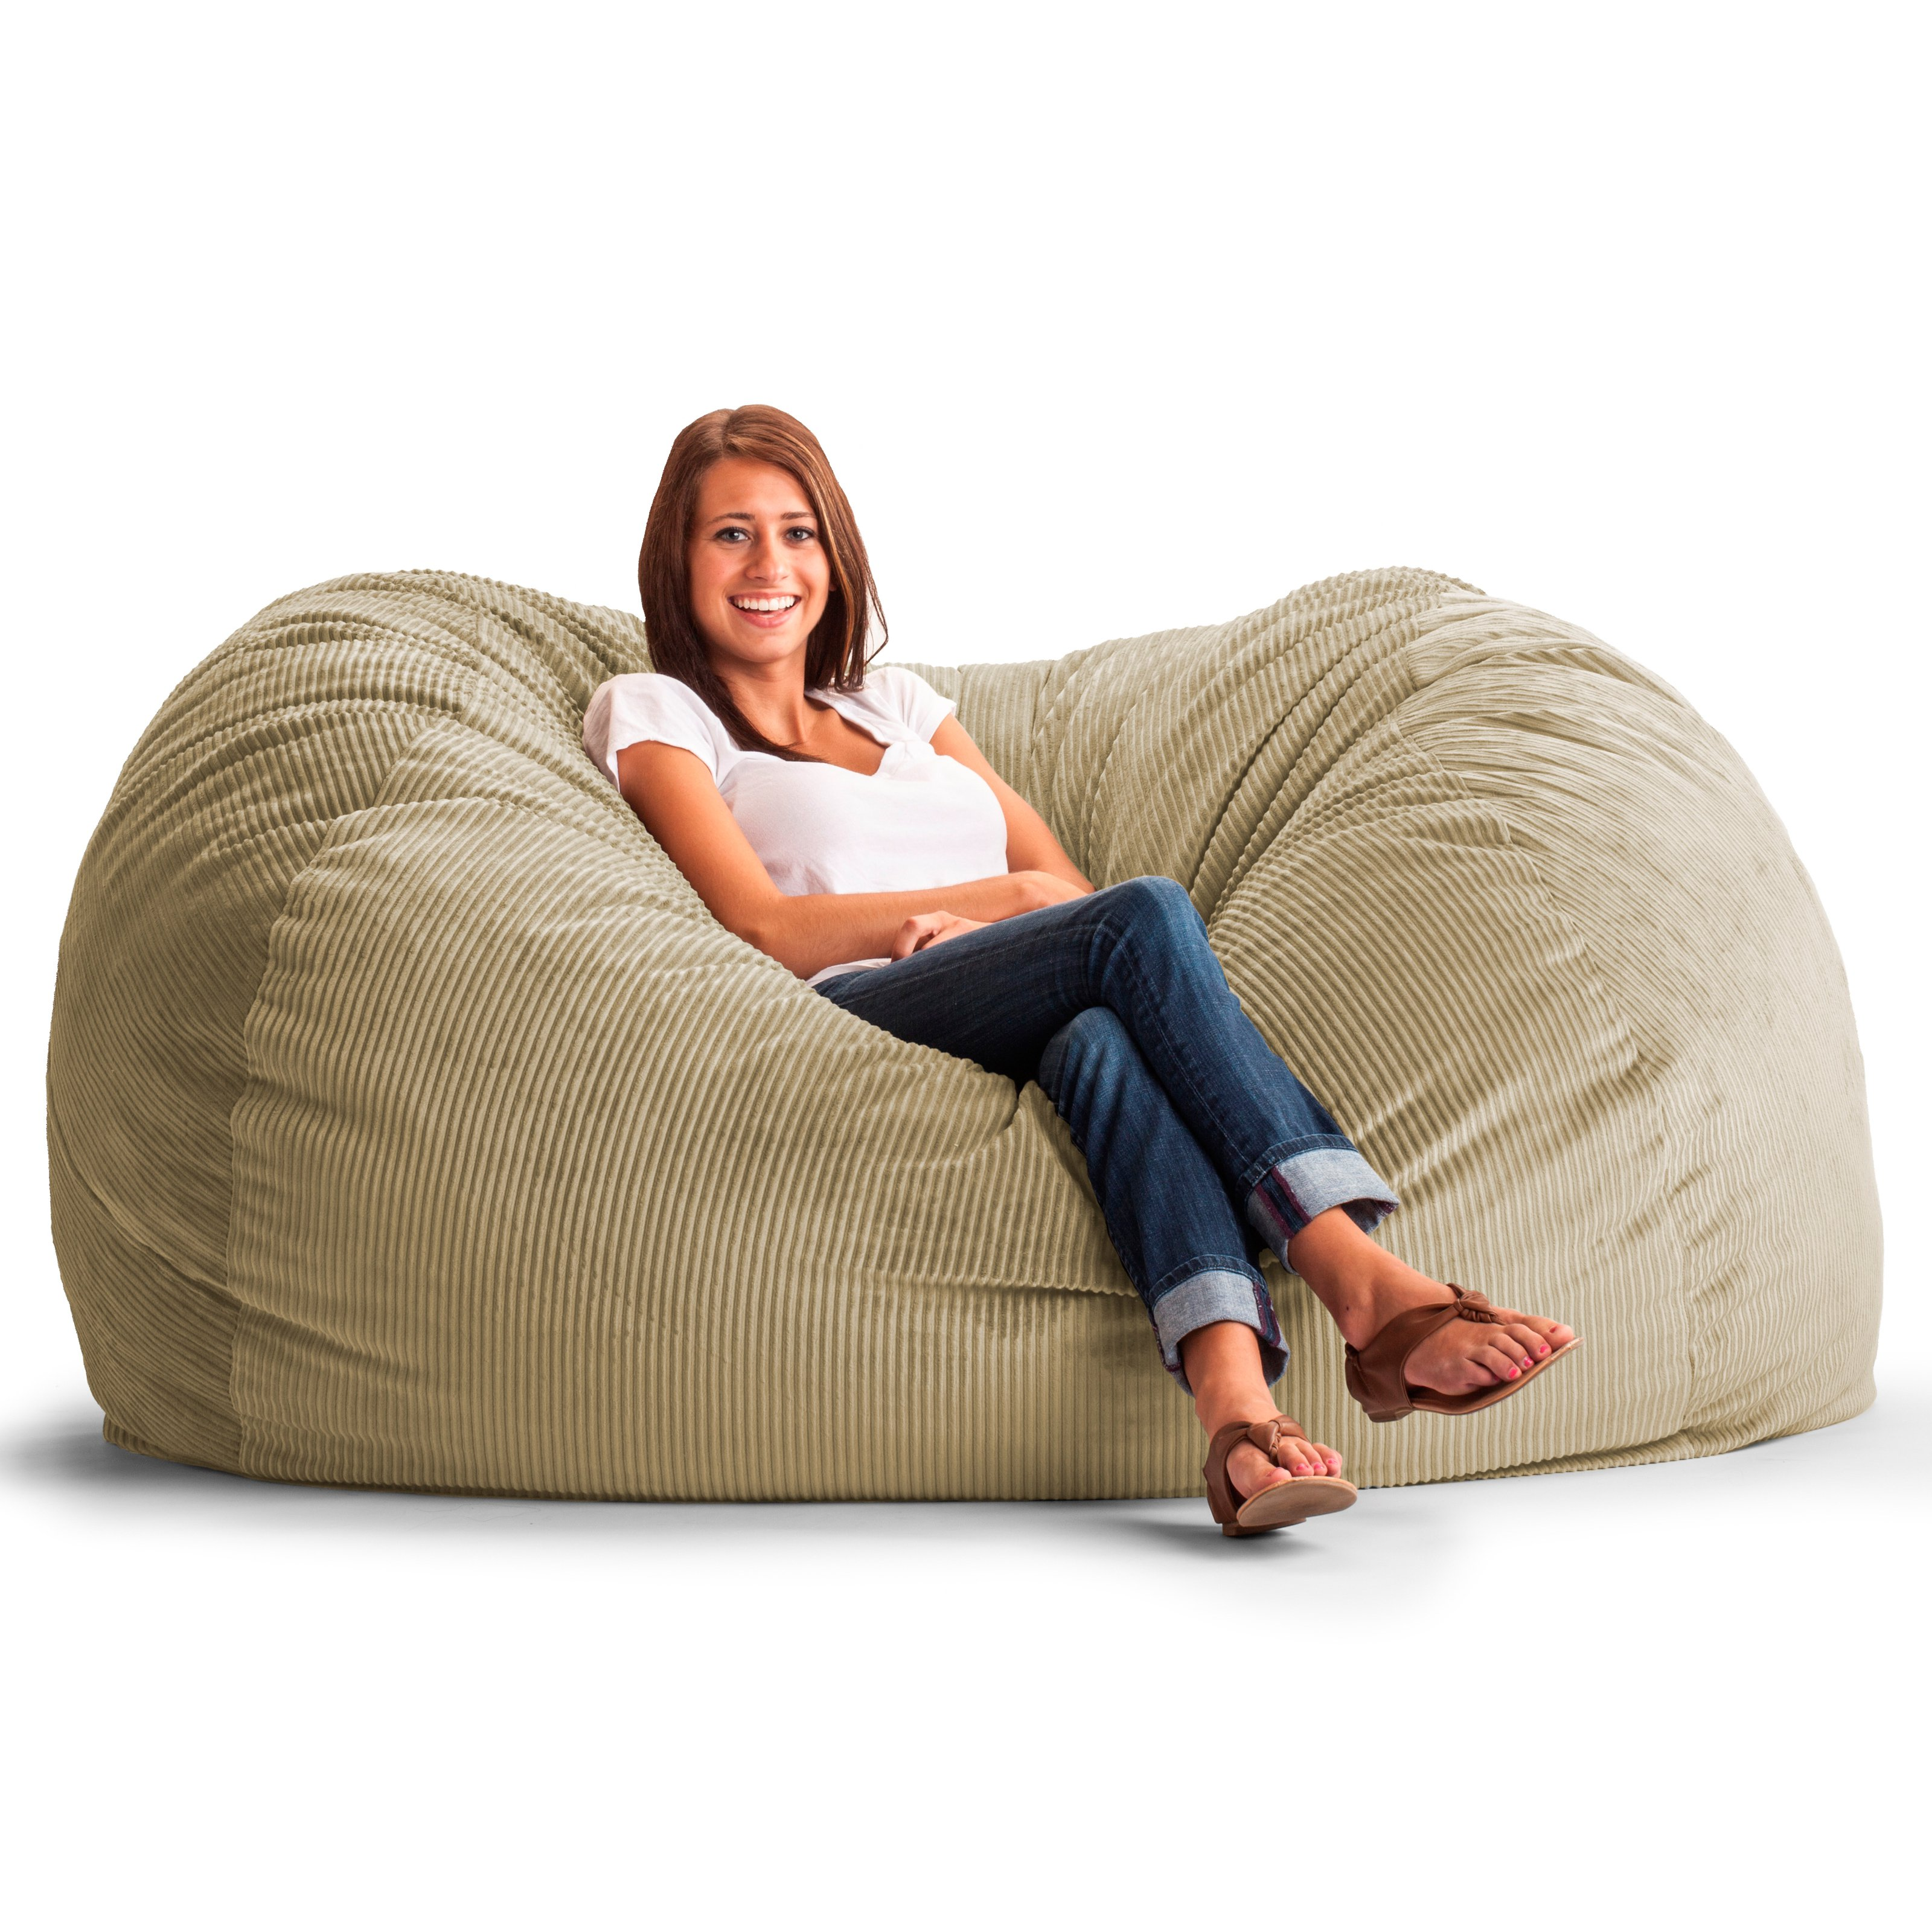 corduroy bean bag chair keekaroo high tray original fuf 6 ft xl wide wale sofa beach walmart com